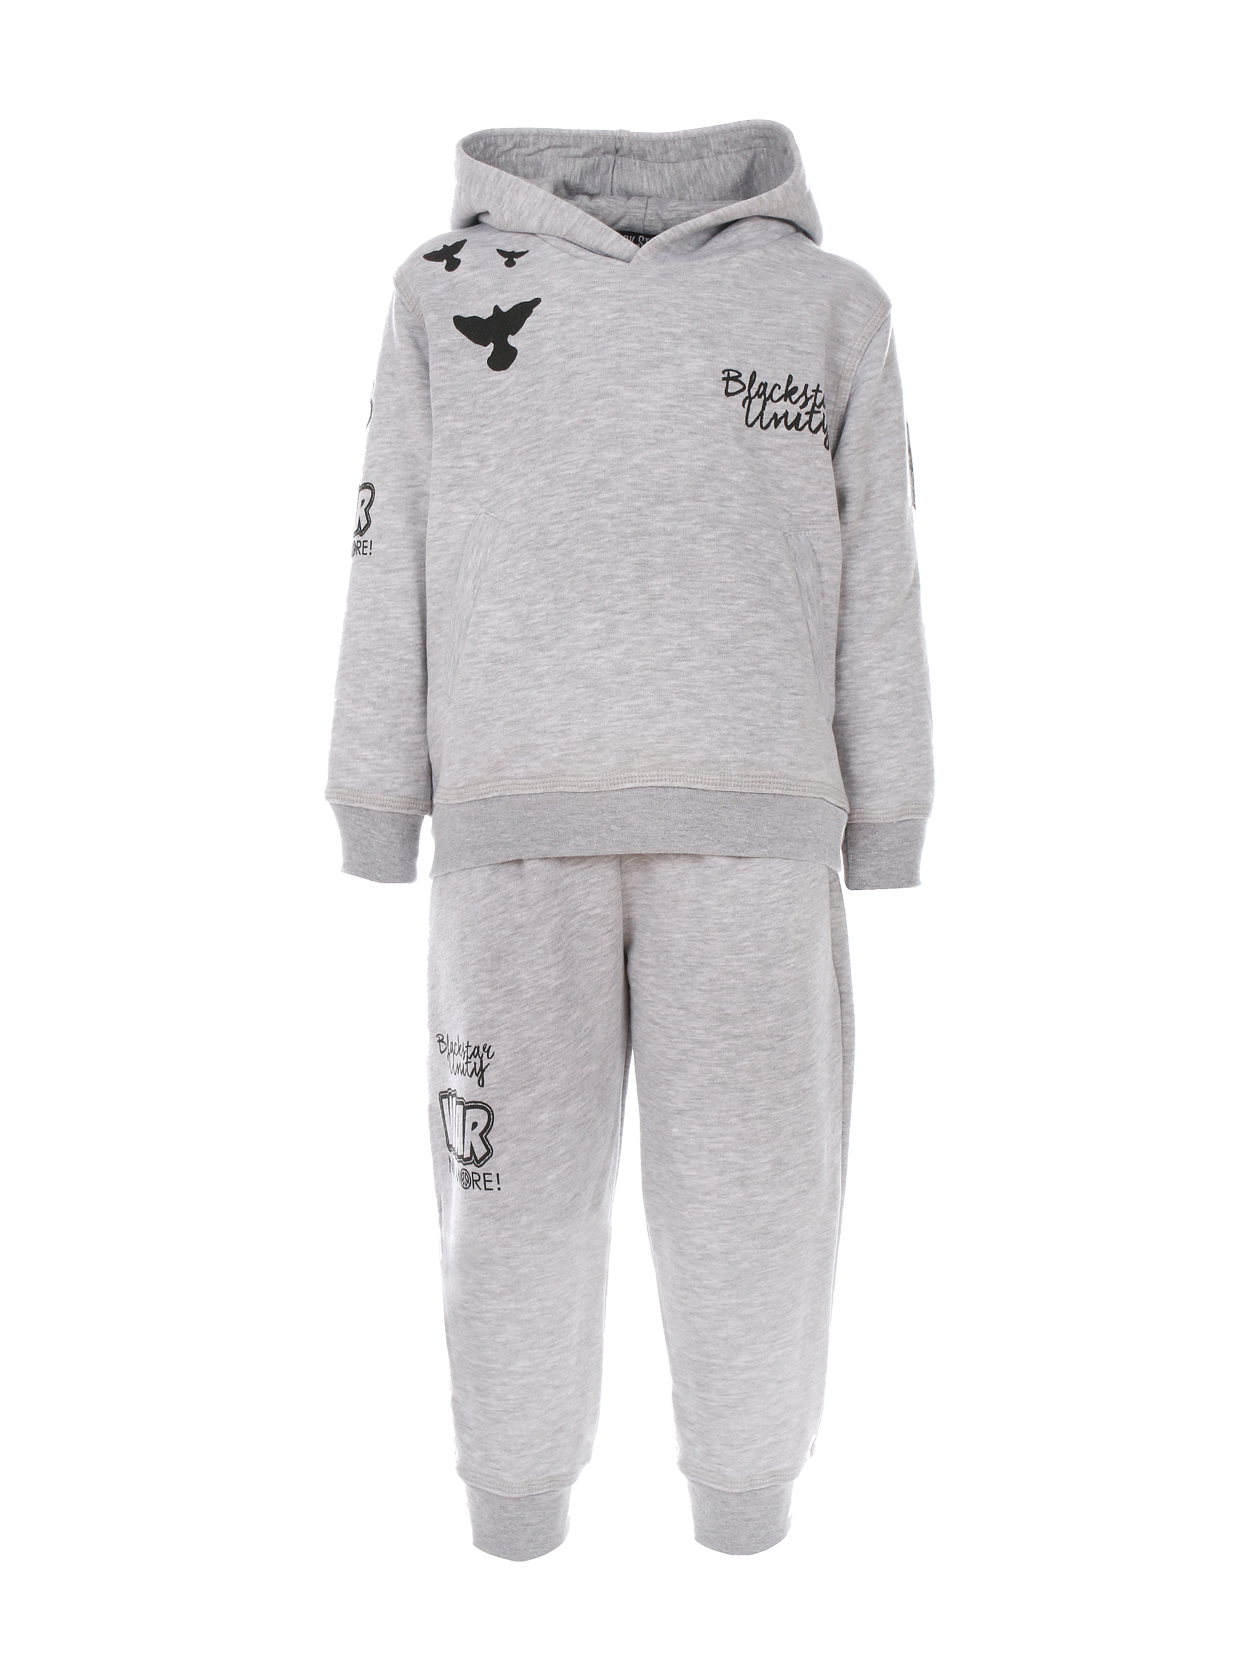 Kids tracksuit Black Star UnityKids sweatshirt and sweatpants set by Black Star Wear. Hoodie with print Blackstar Unity and crows on the chest and printed sleeves. Joggers with side pockets and print on the right side. Avaliable in gray.<br><br>size: 3-4 years<br>color: Gray melange<br>gender: unisex